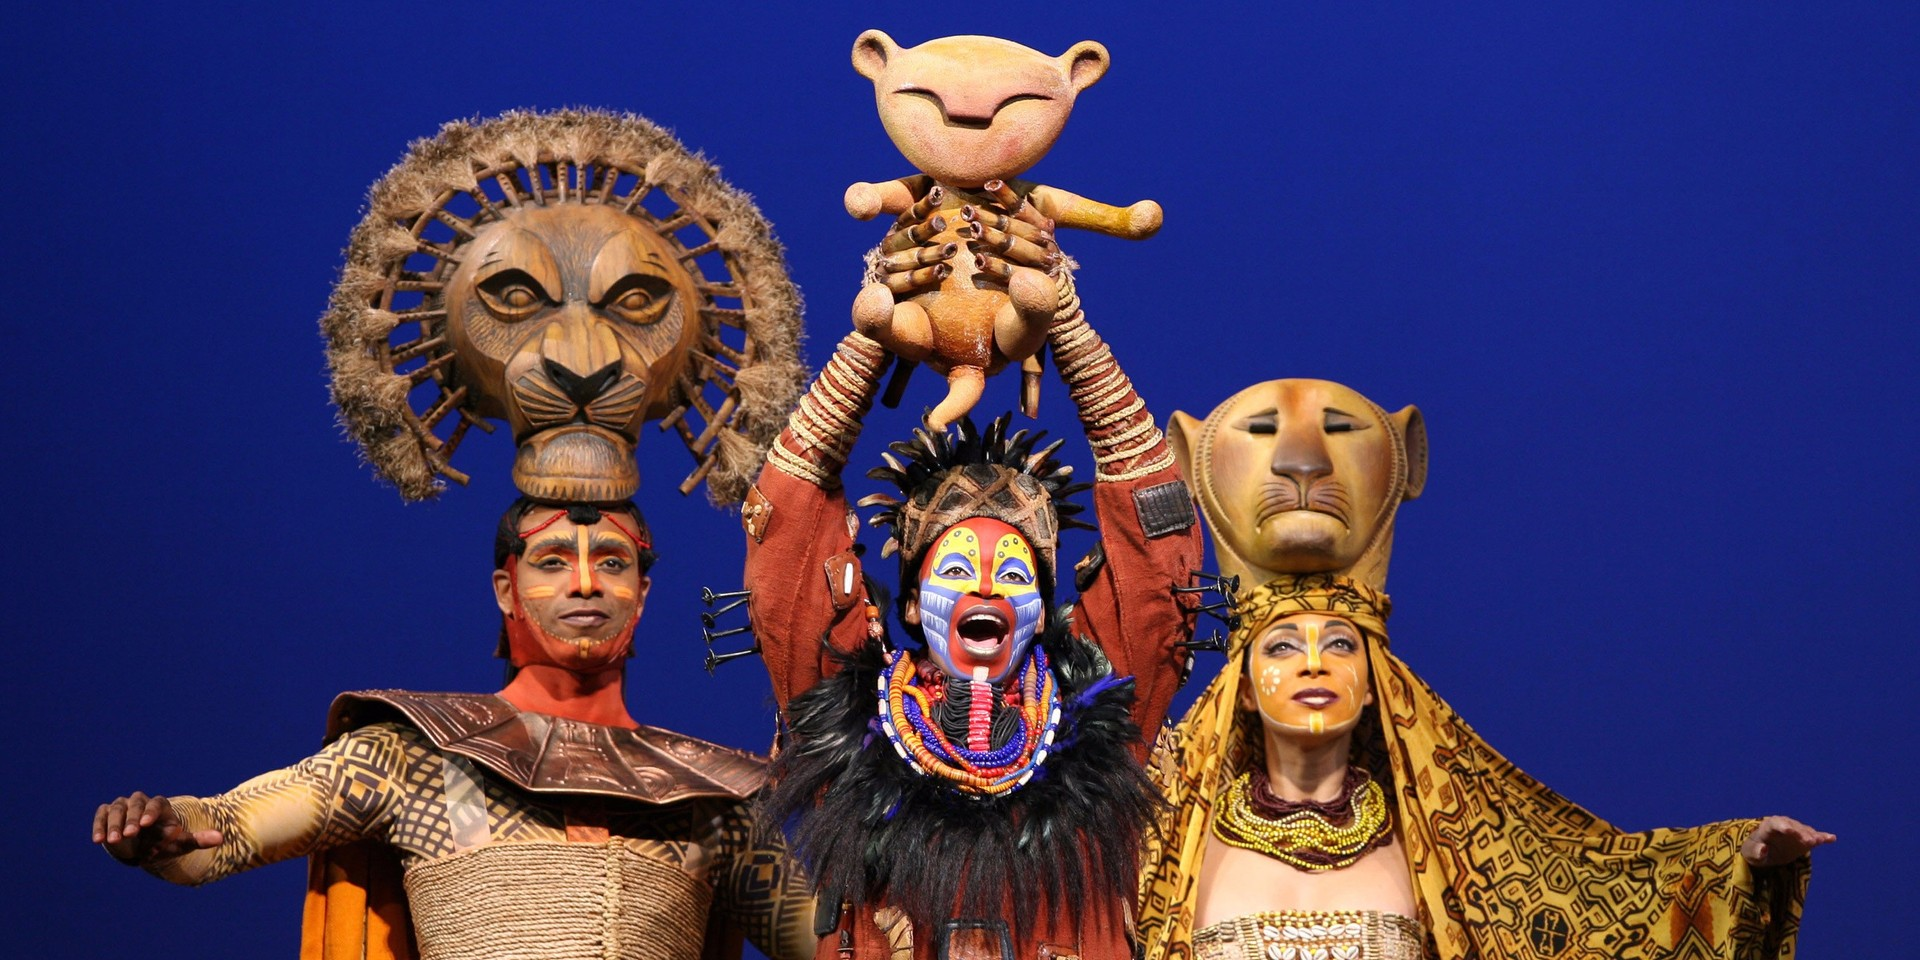 The Lion King musical returns to Singapore in June 2018